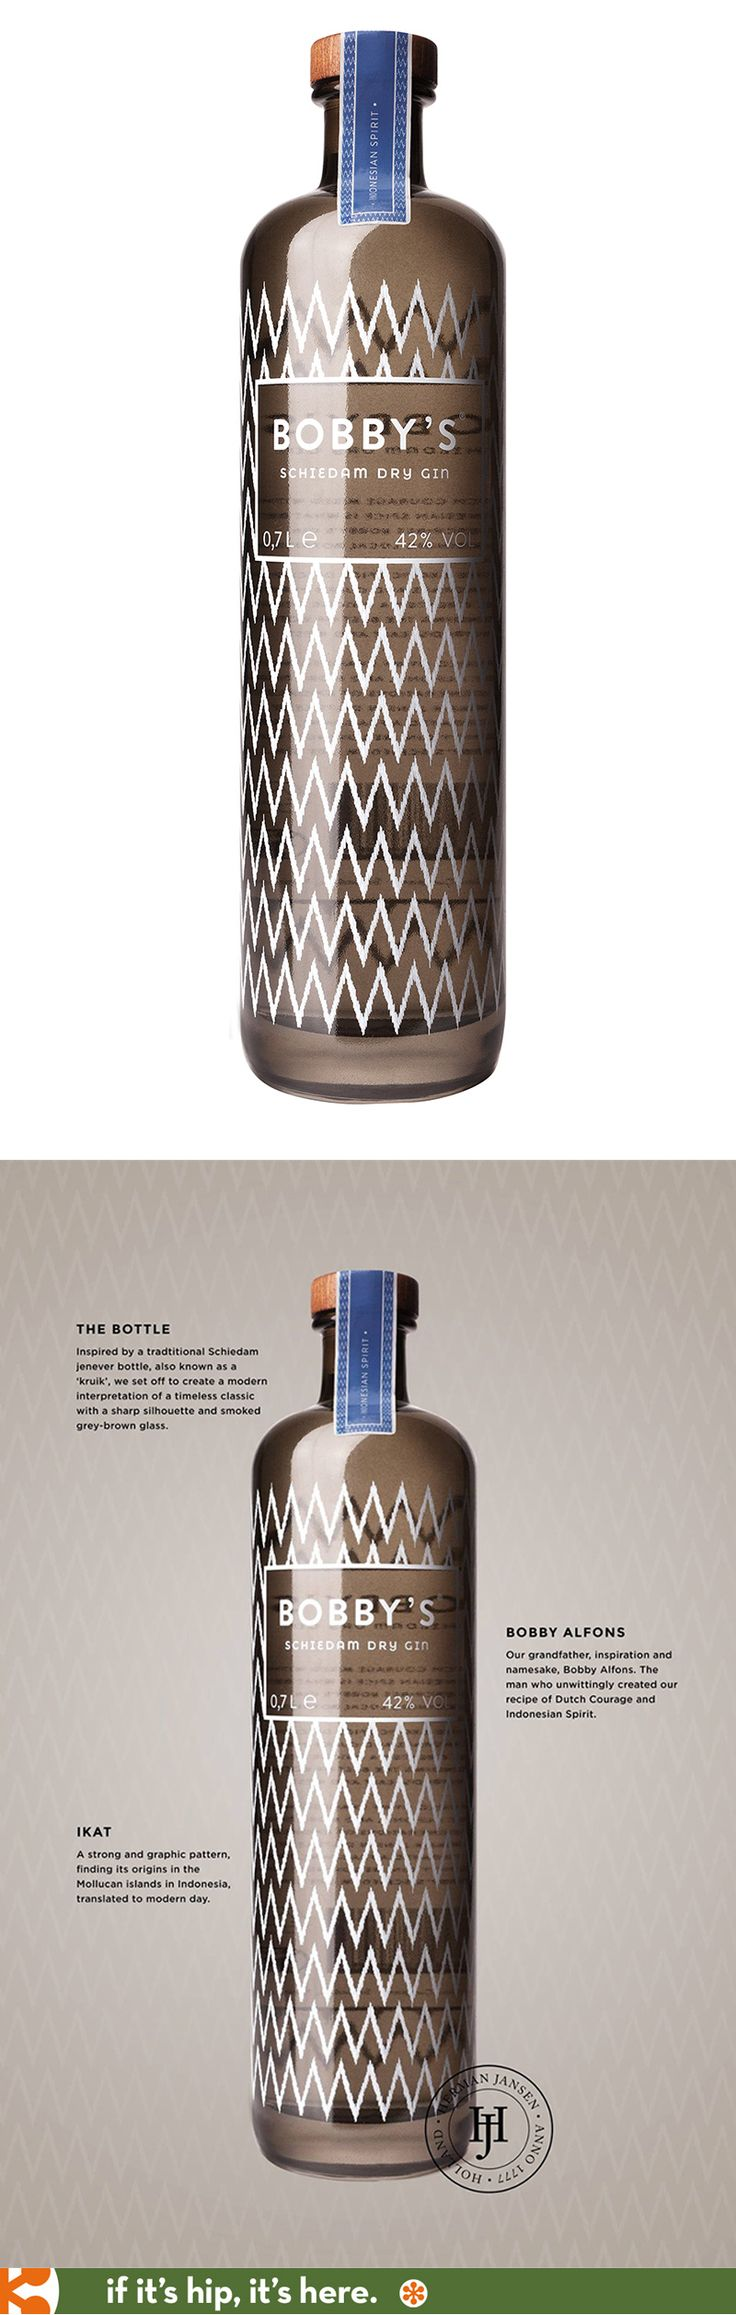 Absolutely love the bottle design for Bobby's Schiedam Dry Gin.